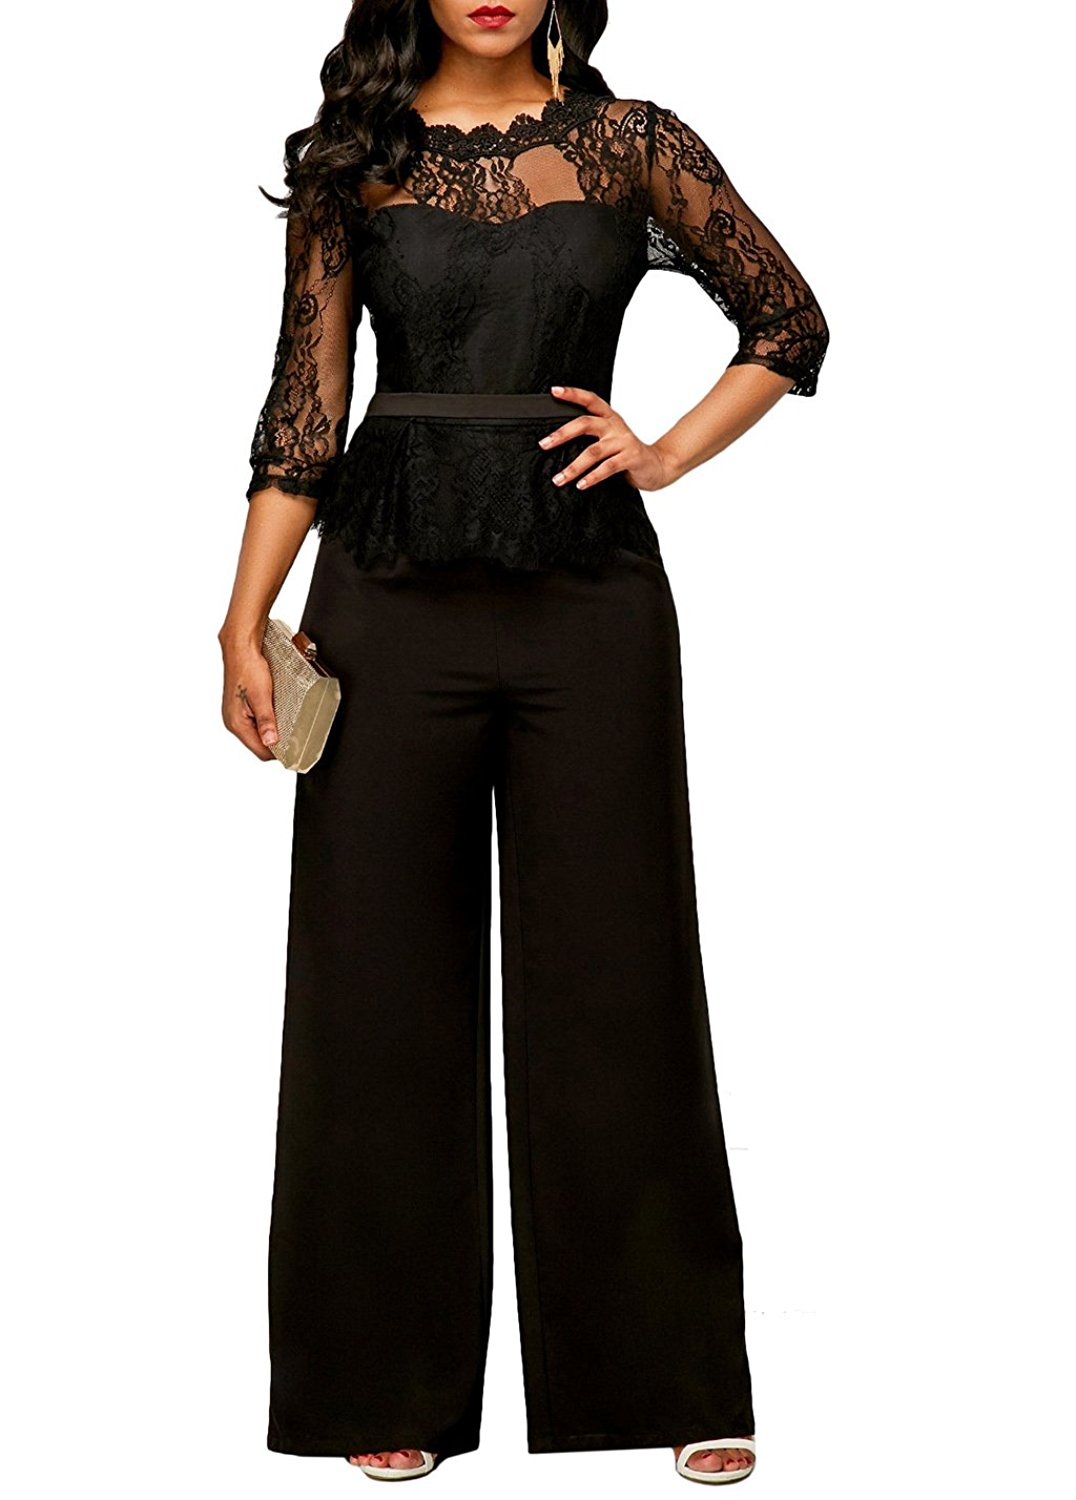 1d4189767aa Sumtory Women High Waist Palazzo Jumpsuit 3 4 Sleeve One Piece Lace Peplum  Jumpsuit With